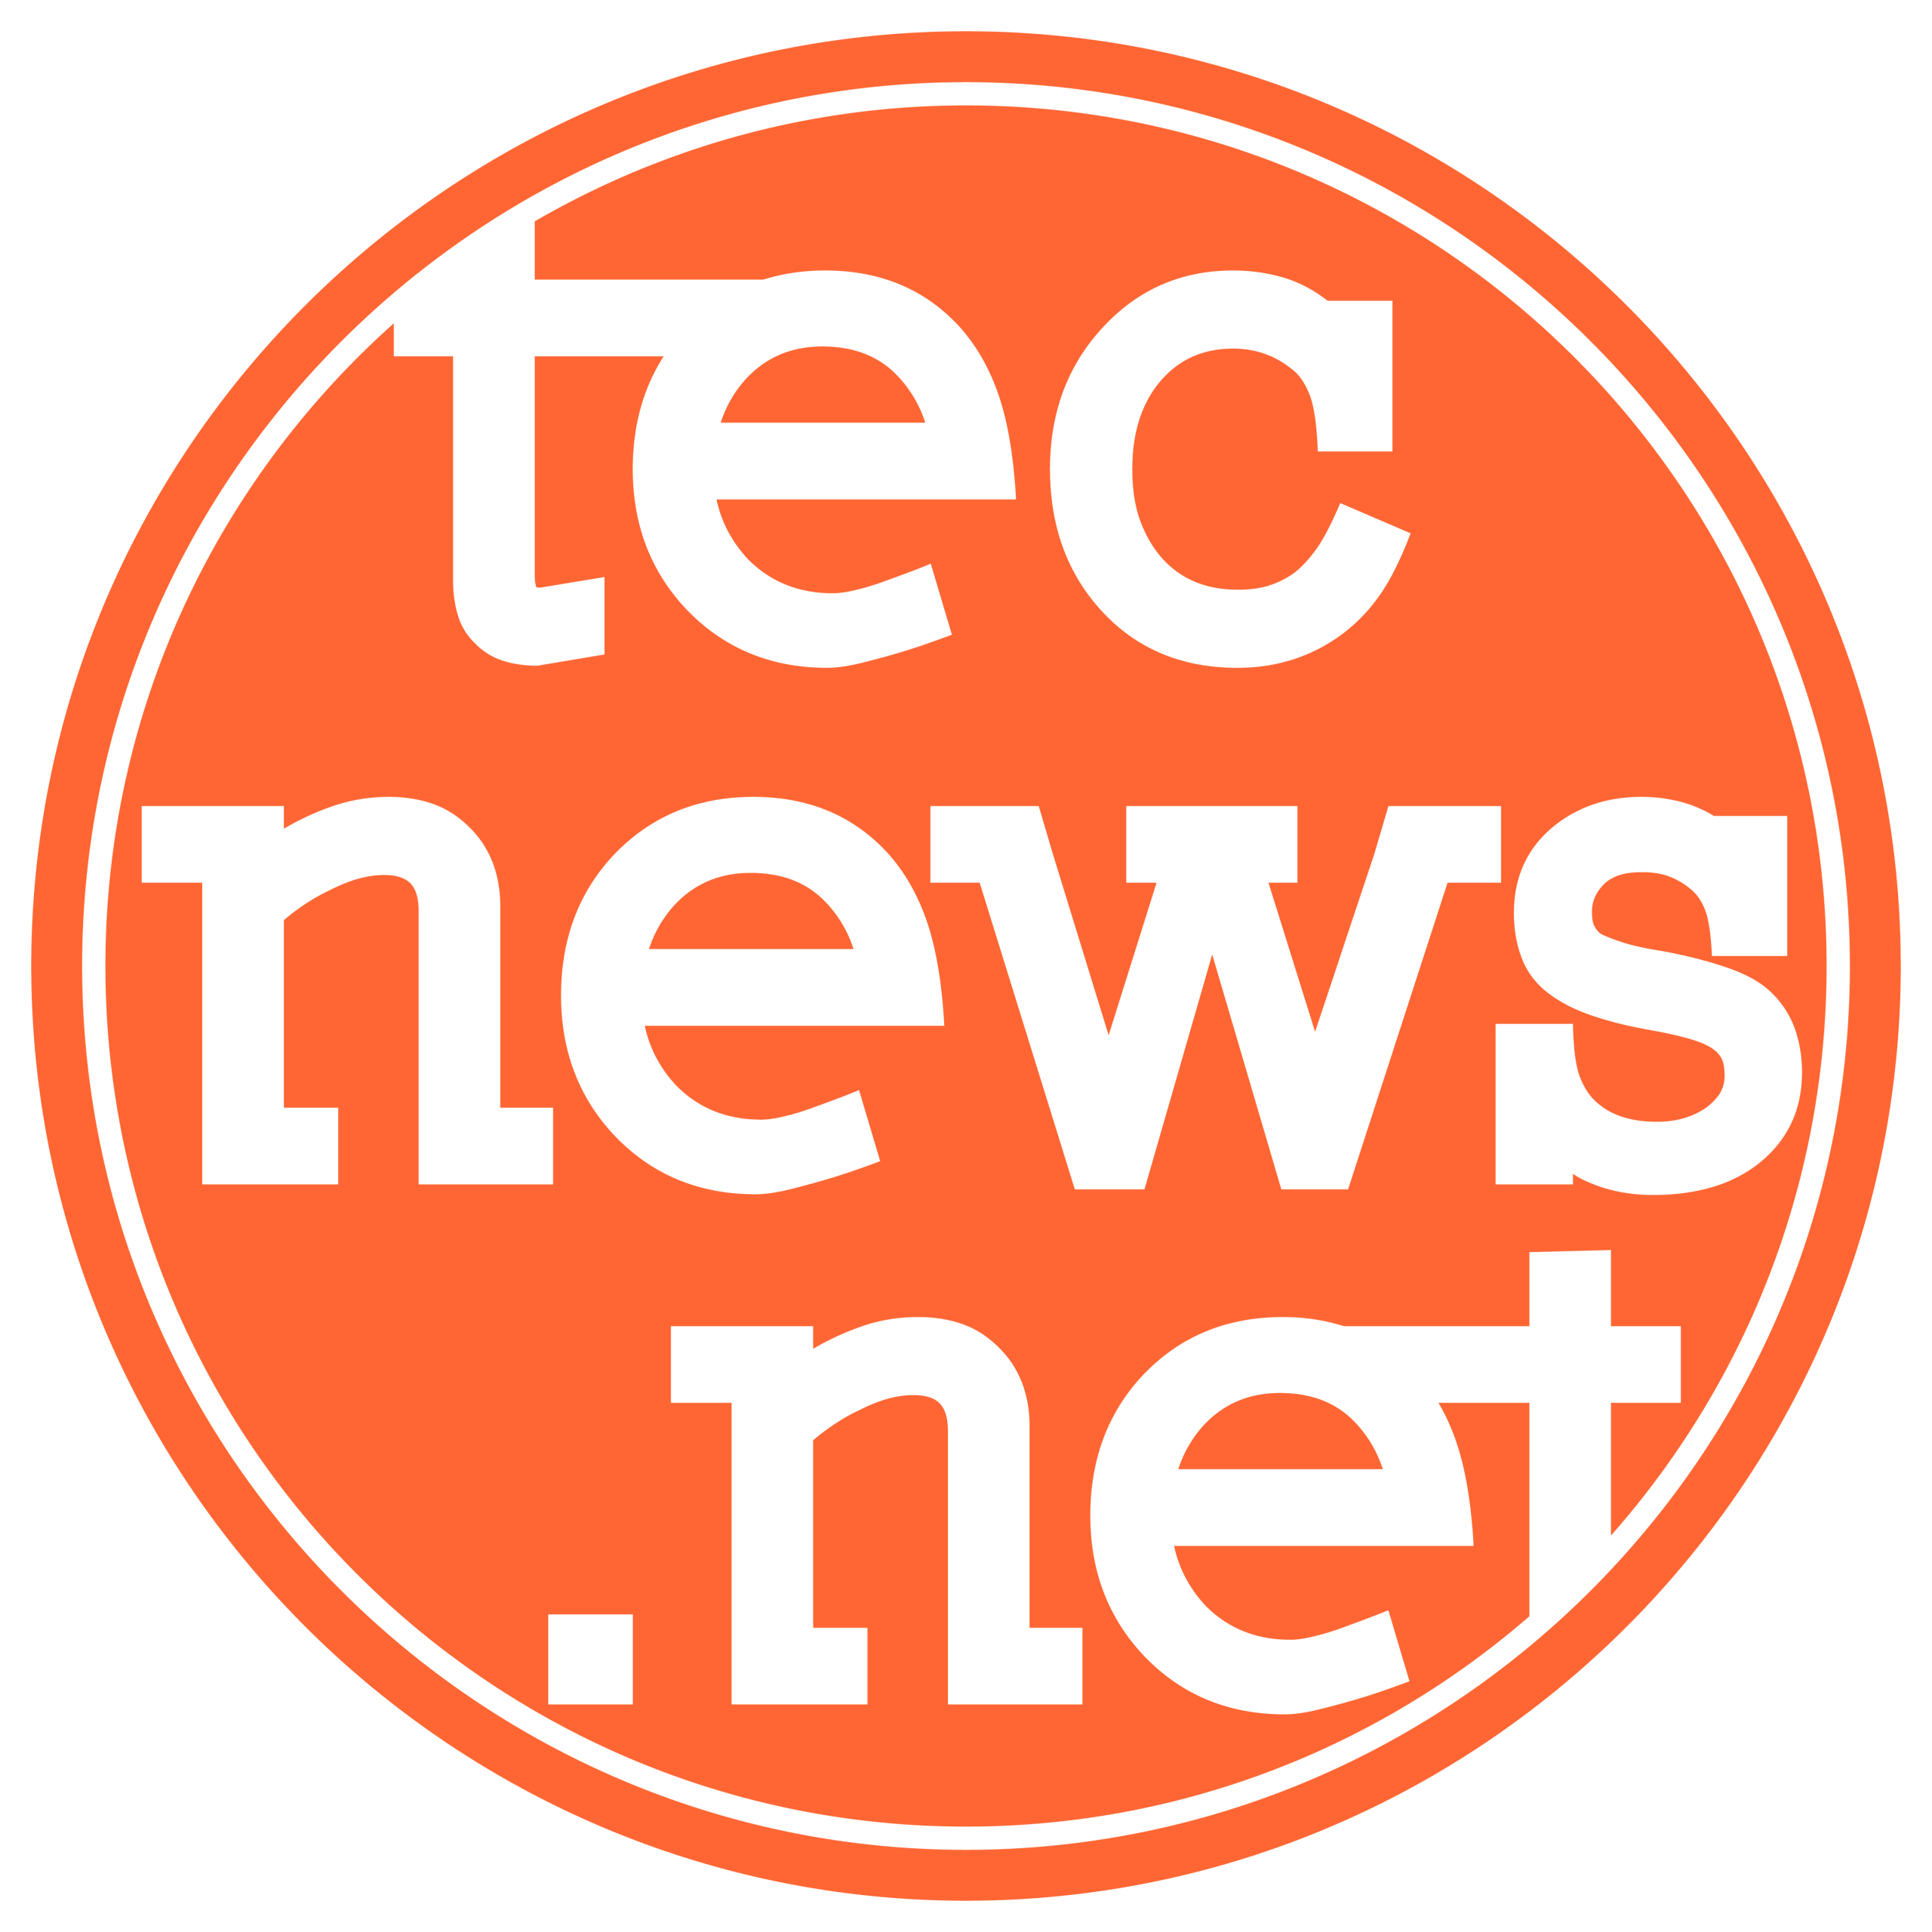 Logotipo Tecnews.net